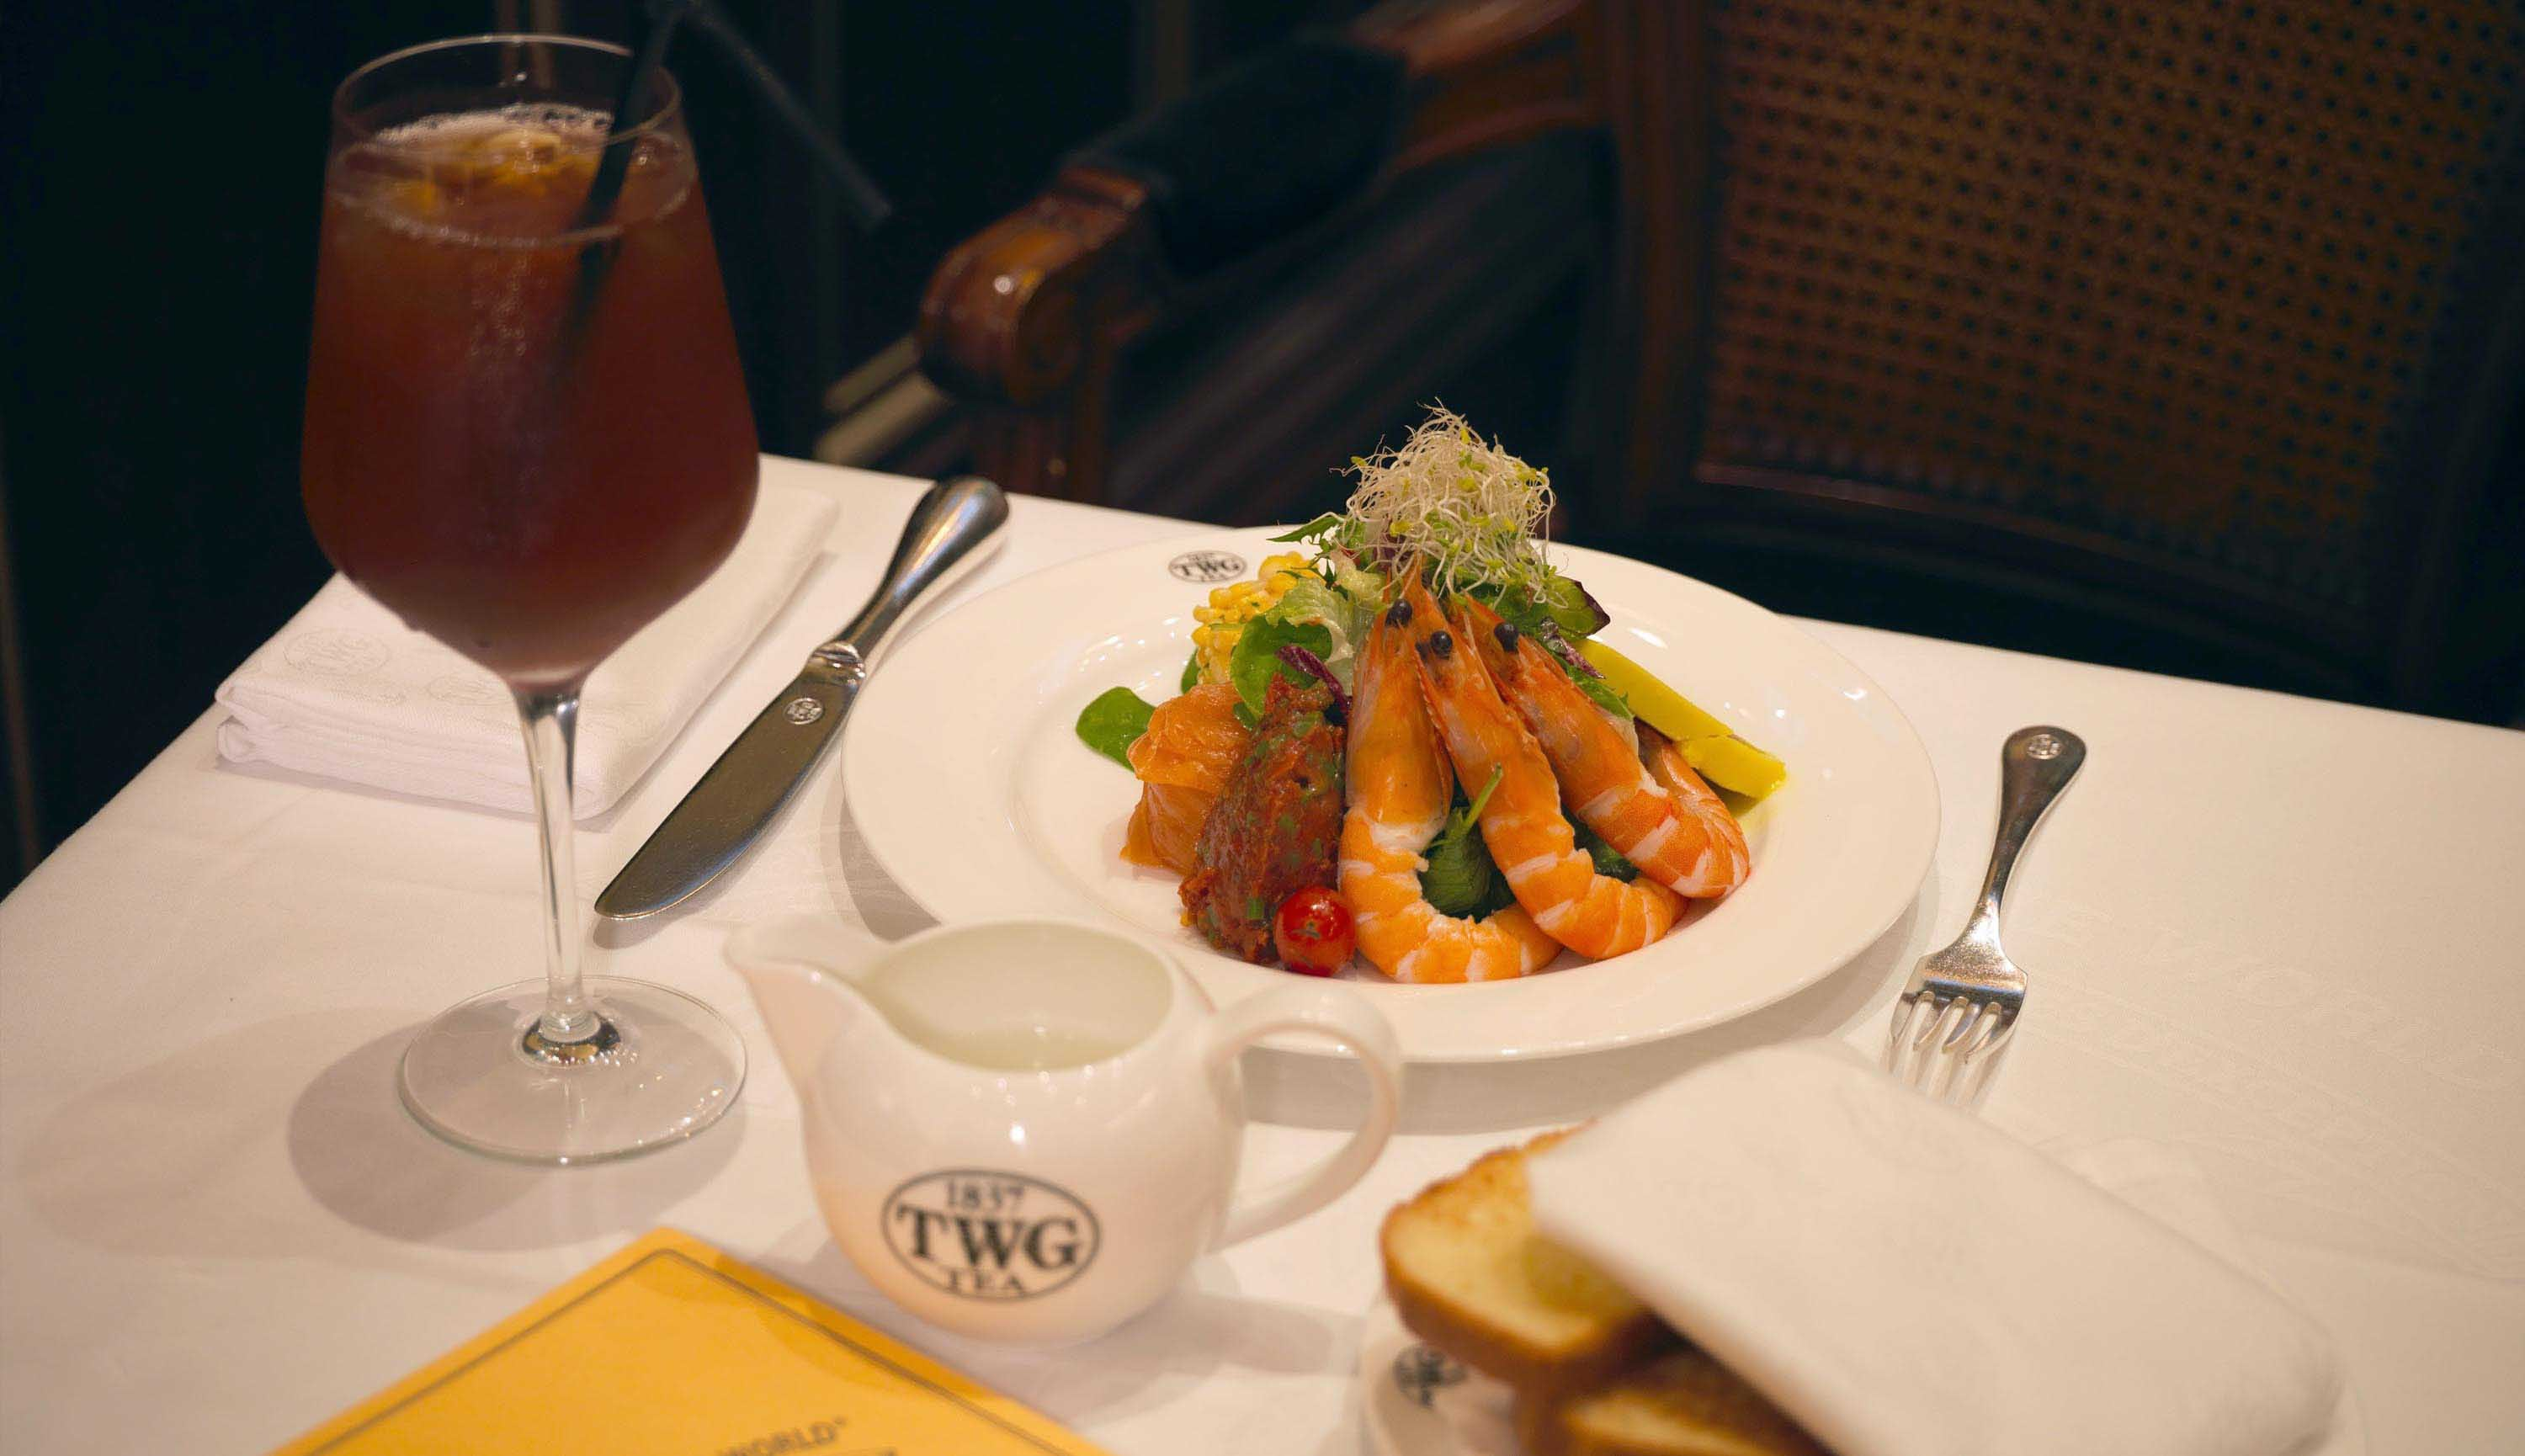 All Day Dining at TWG Tea